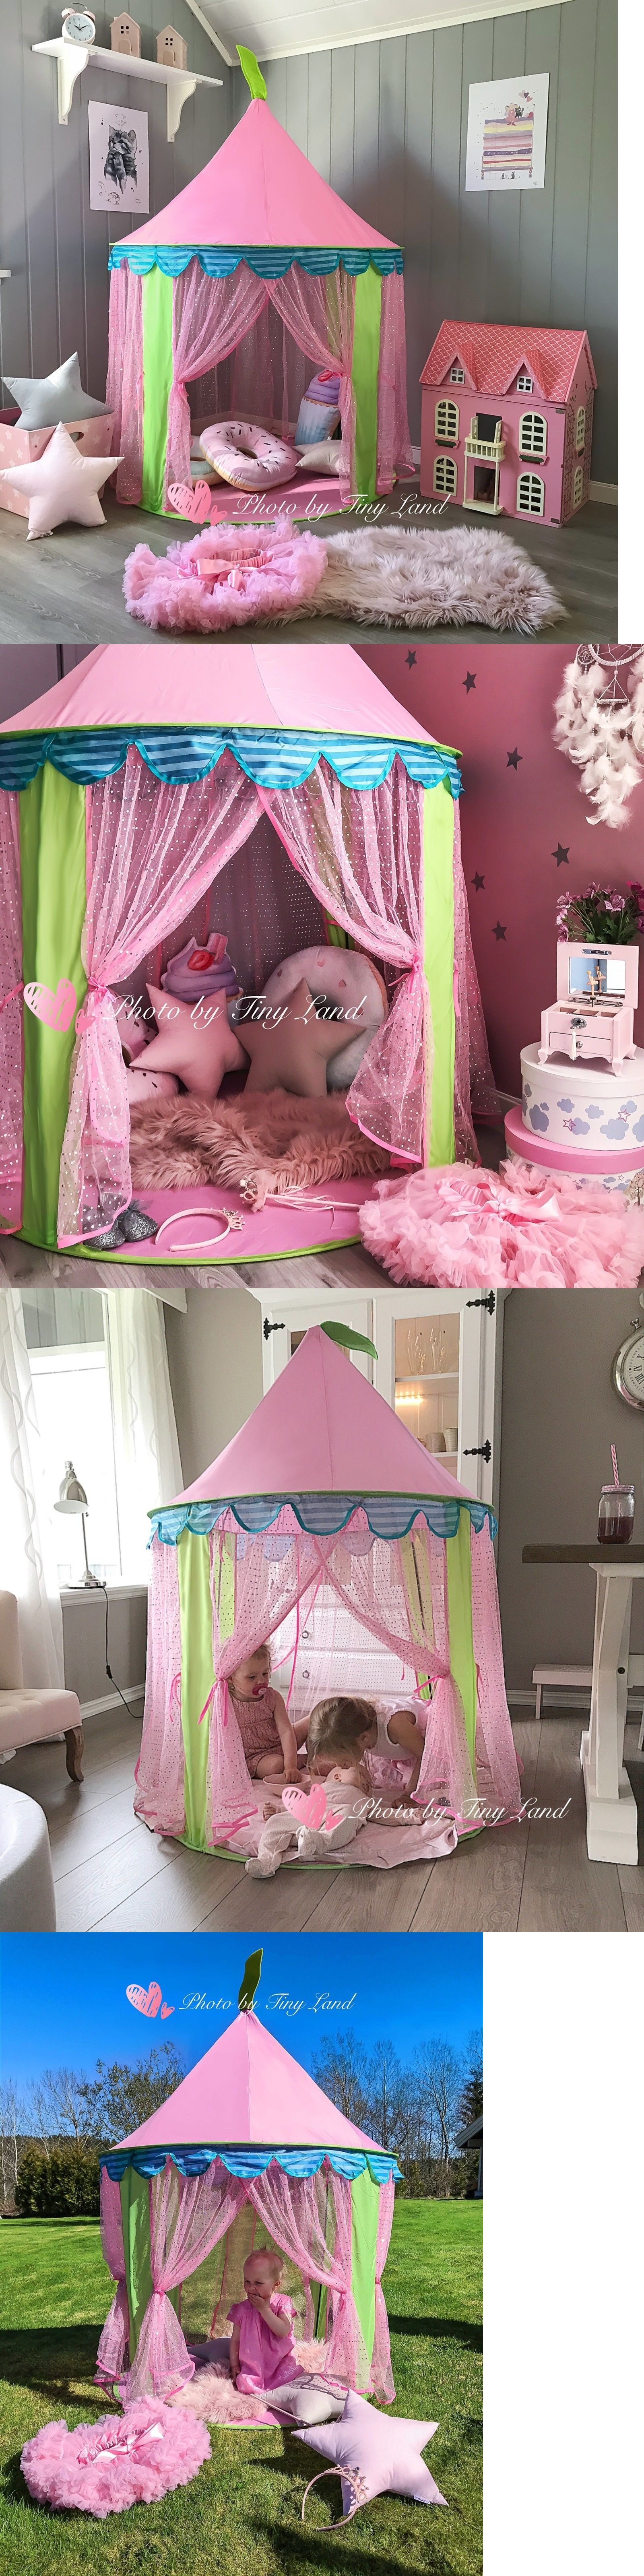 Play Tents 145997 Fairy Tale Princess Castle Play House Tent For Girls Toy Foldable Portable & Play Tents 145997: Fairy Tale Princess Castle Play House Tent For ...